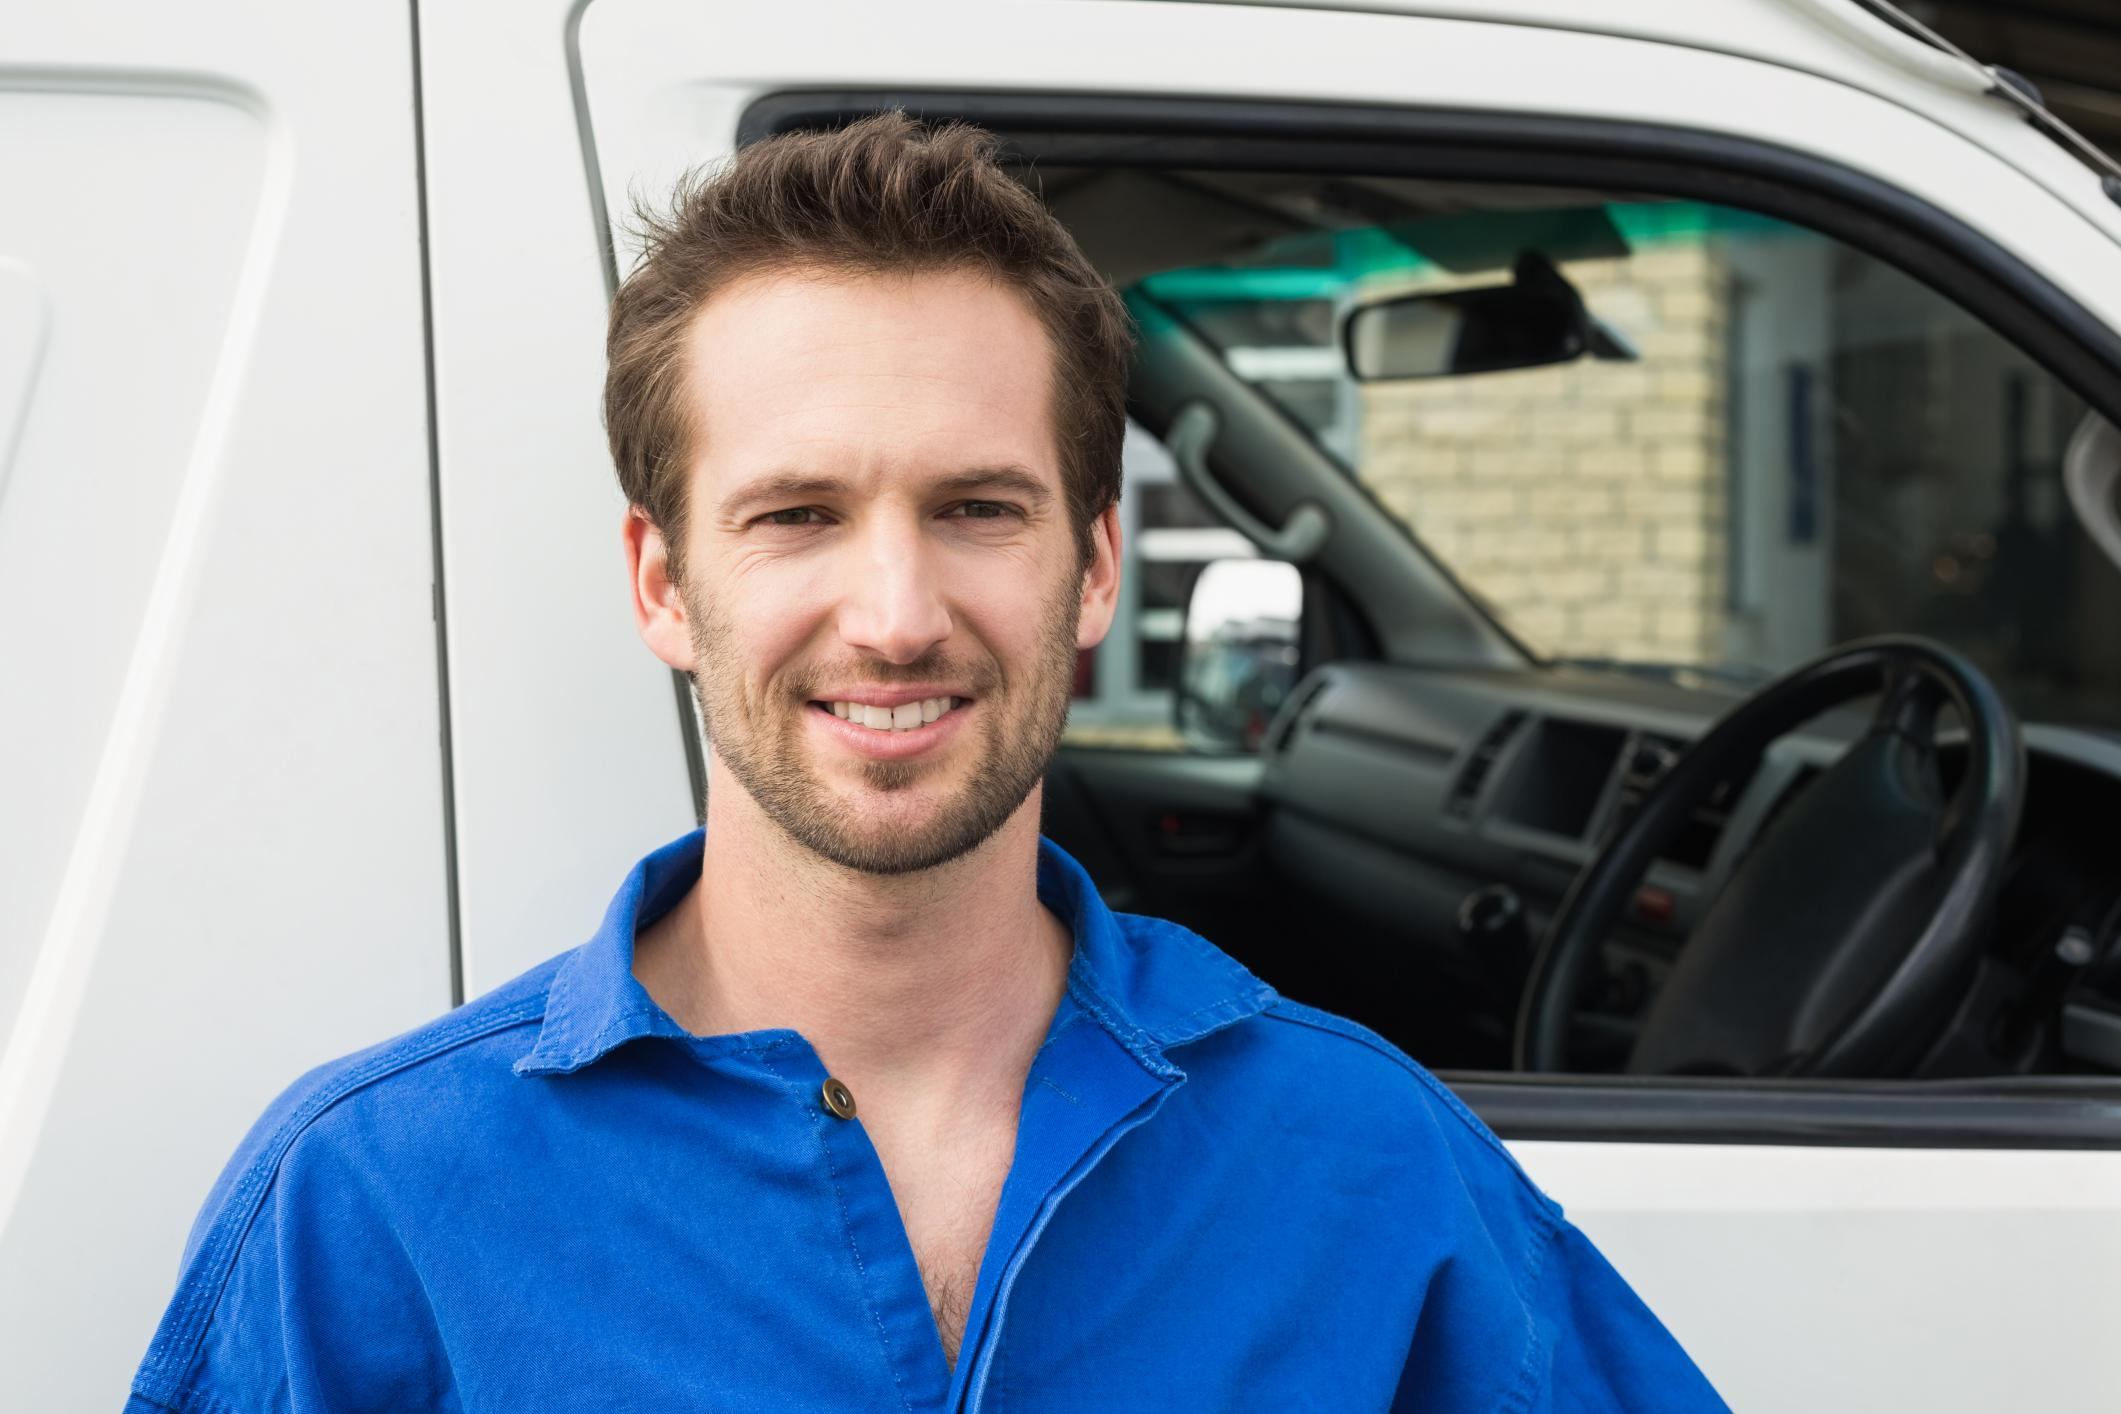 DC Heating & Air Conditioning - About